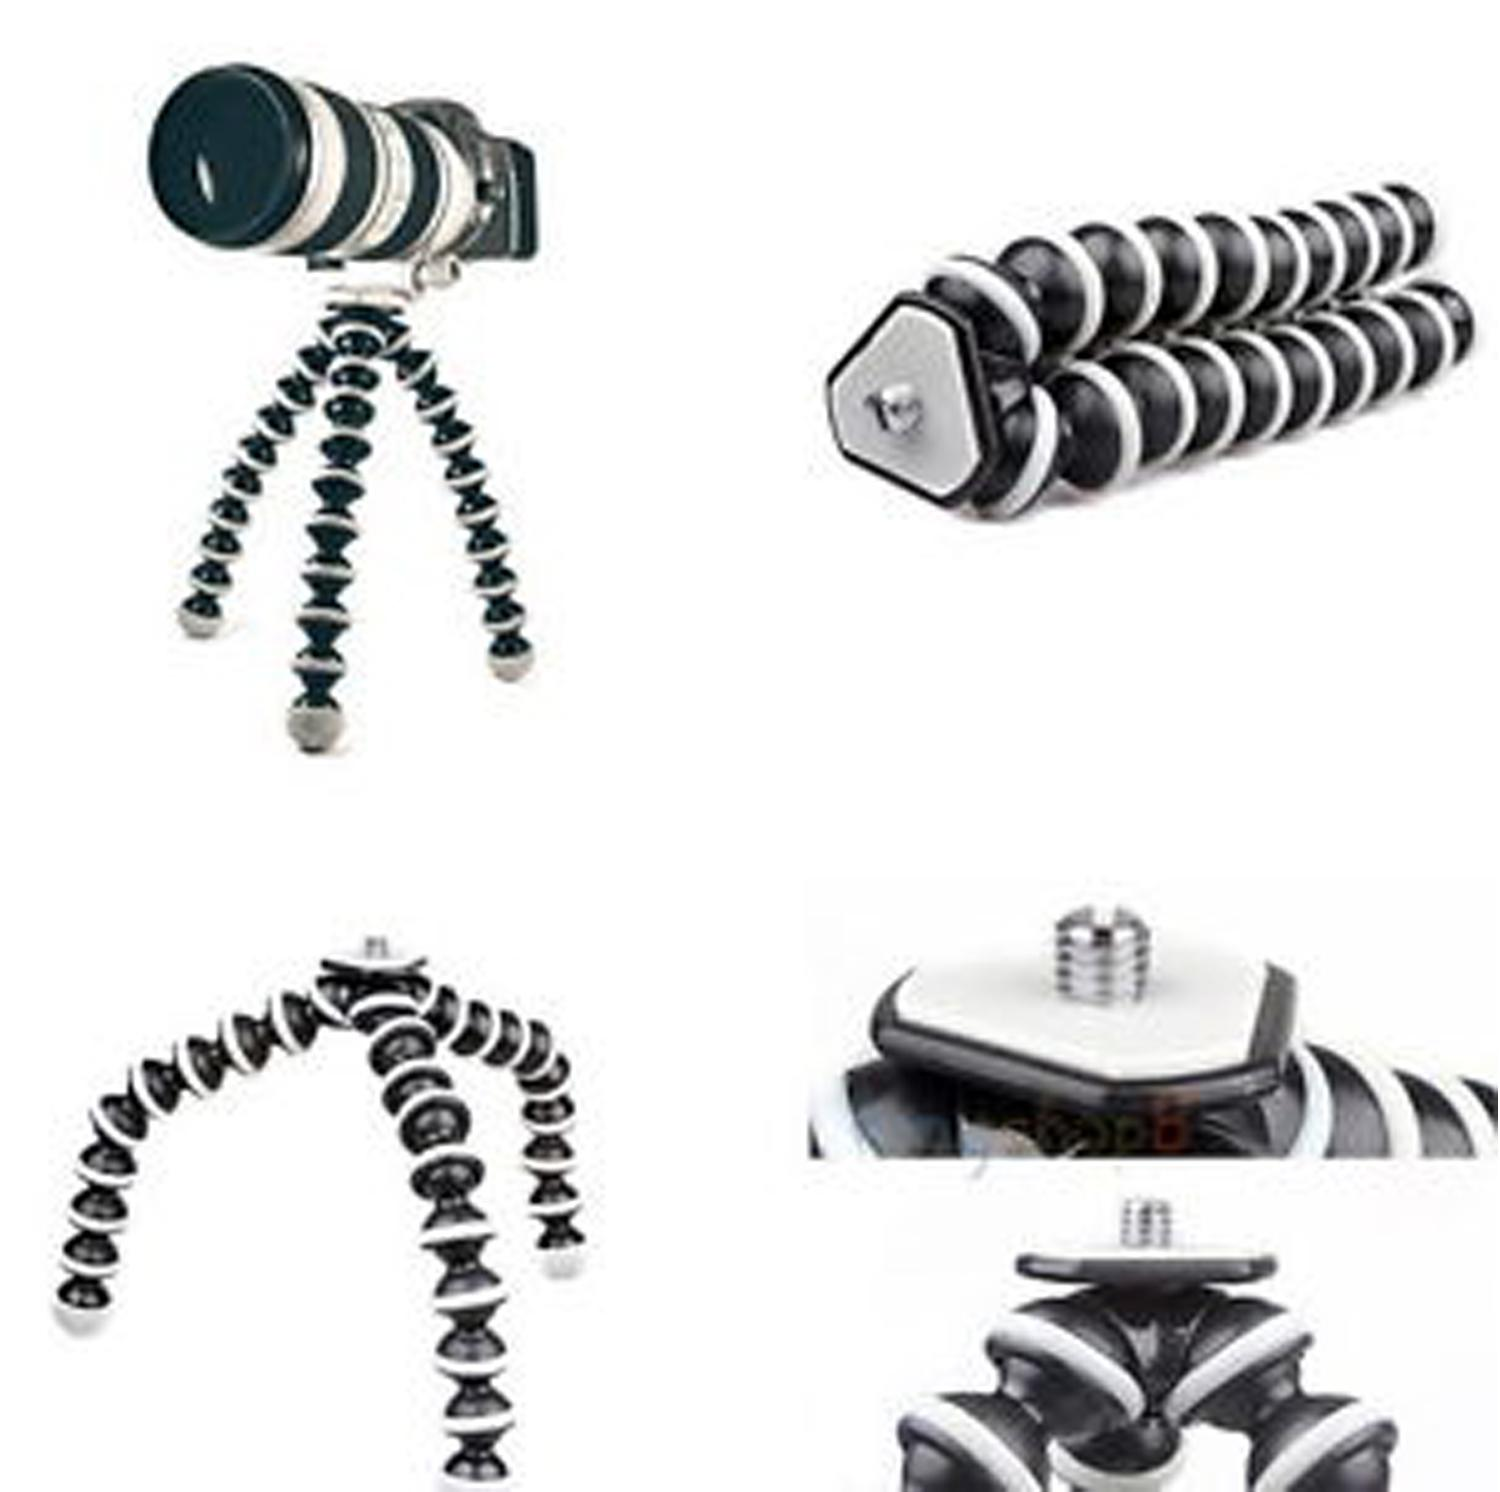 Gorilla pod Large Octopus Flexible Tripod Stand